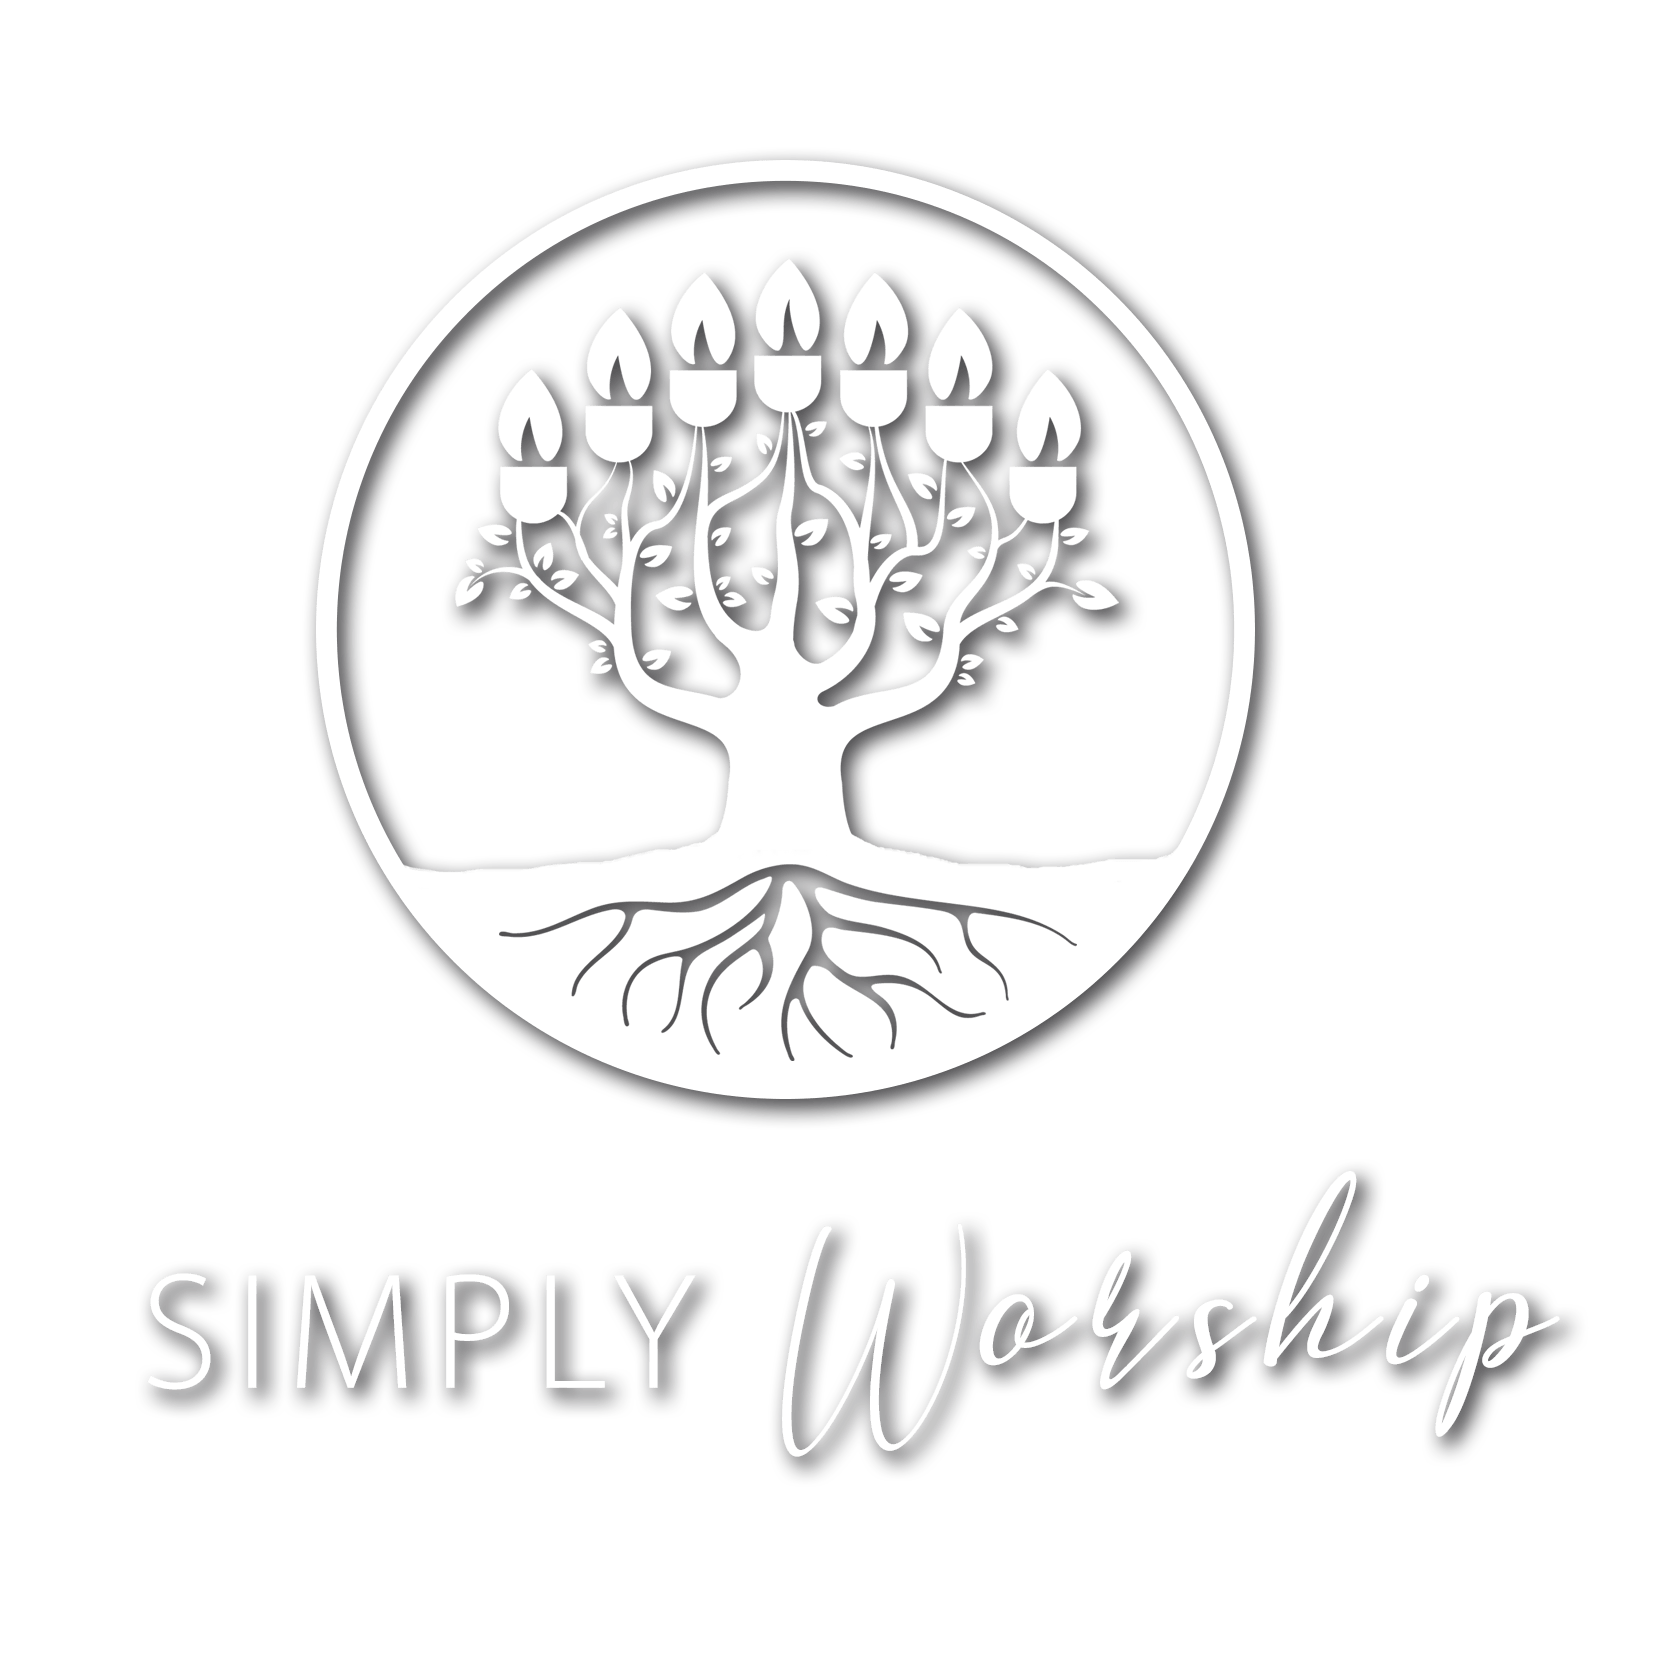 Simply Worship white logo with words